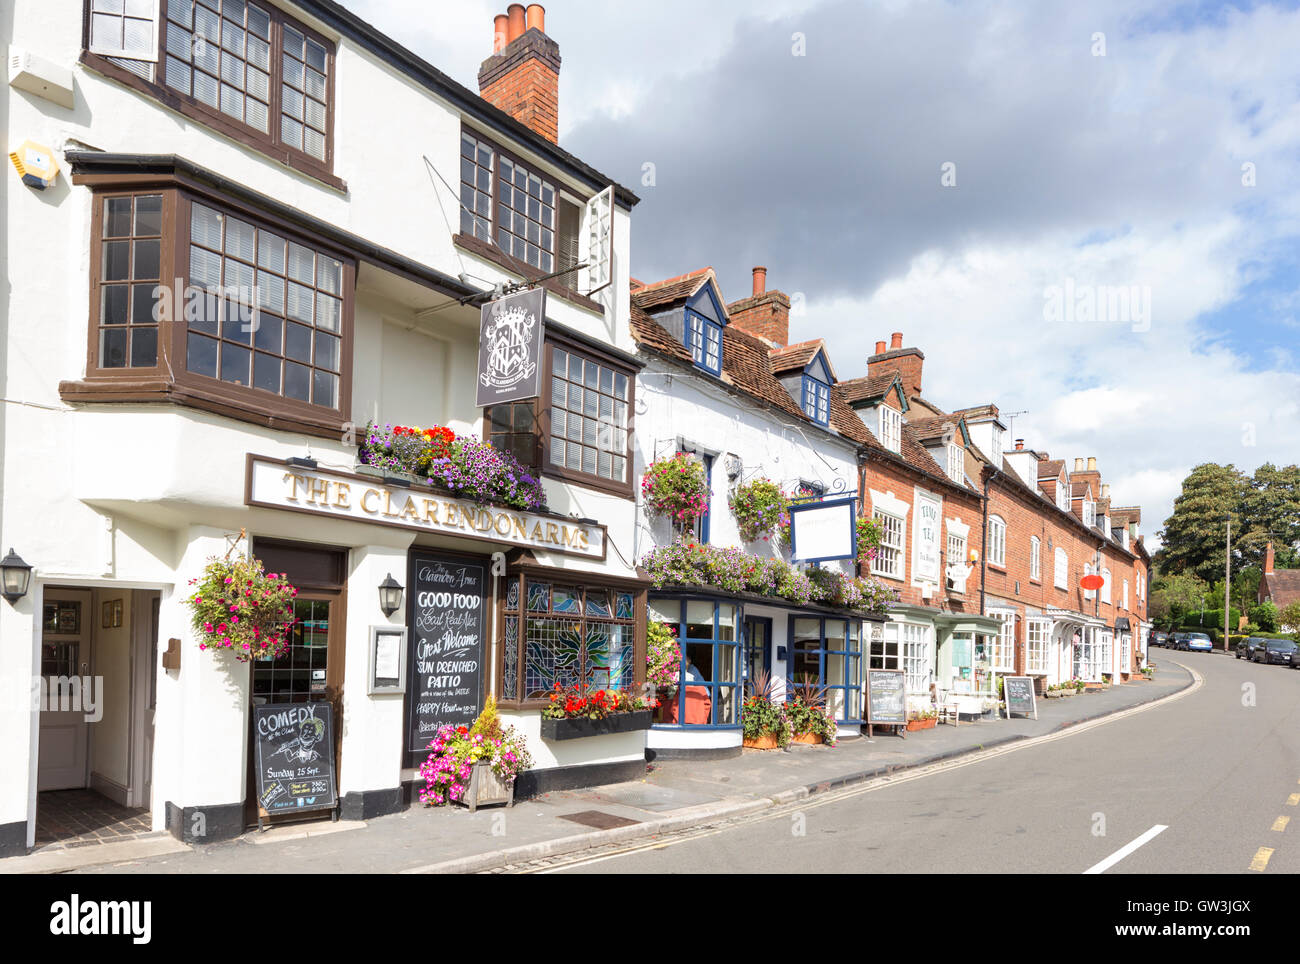 Attractive Shops and pubs in 'Castle Hill', Kenilworth, Warwickshire, England, UK - Stock Image